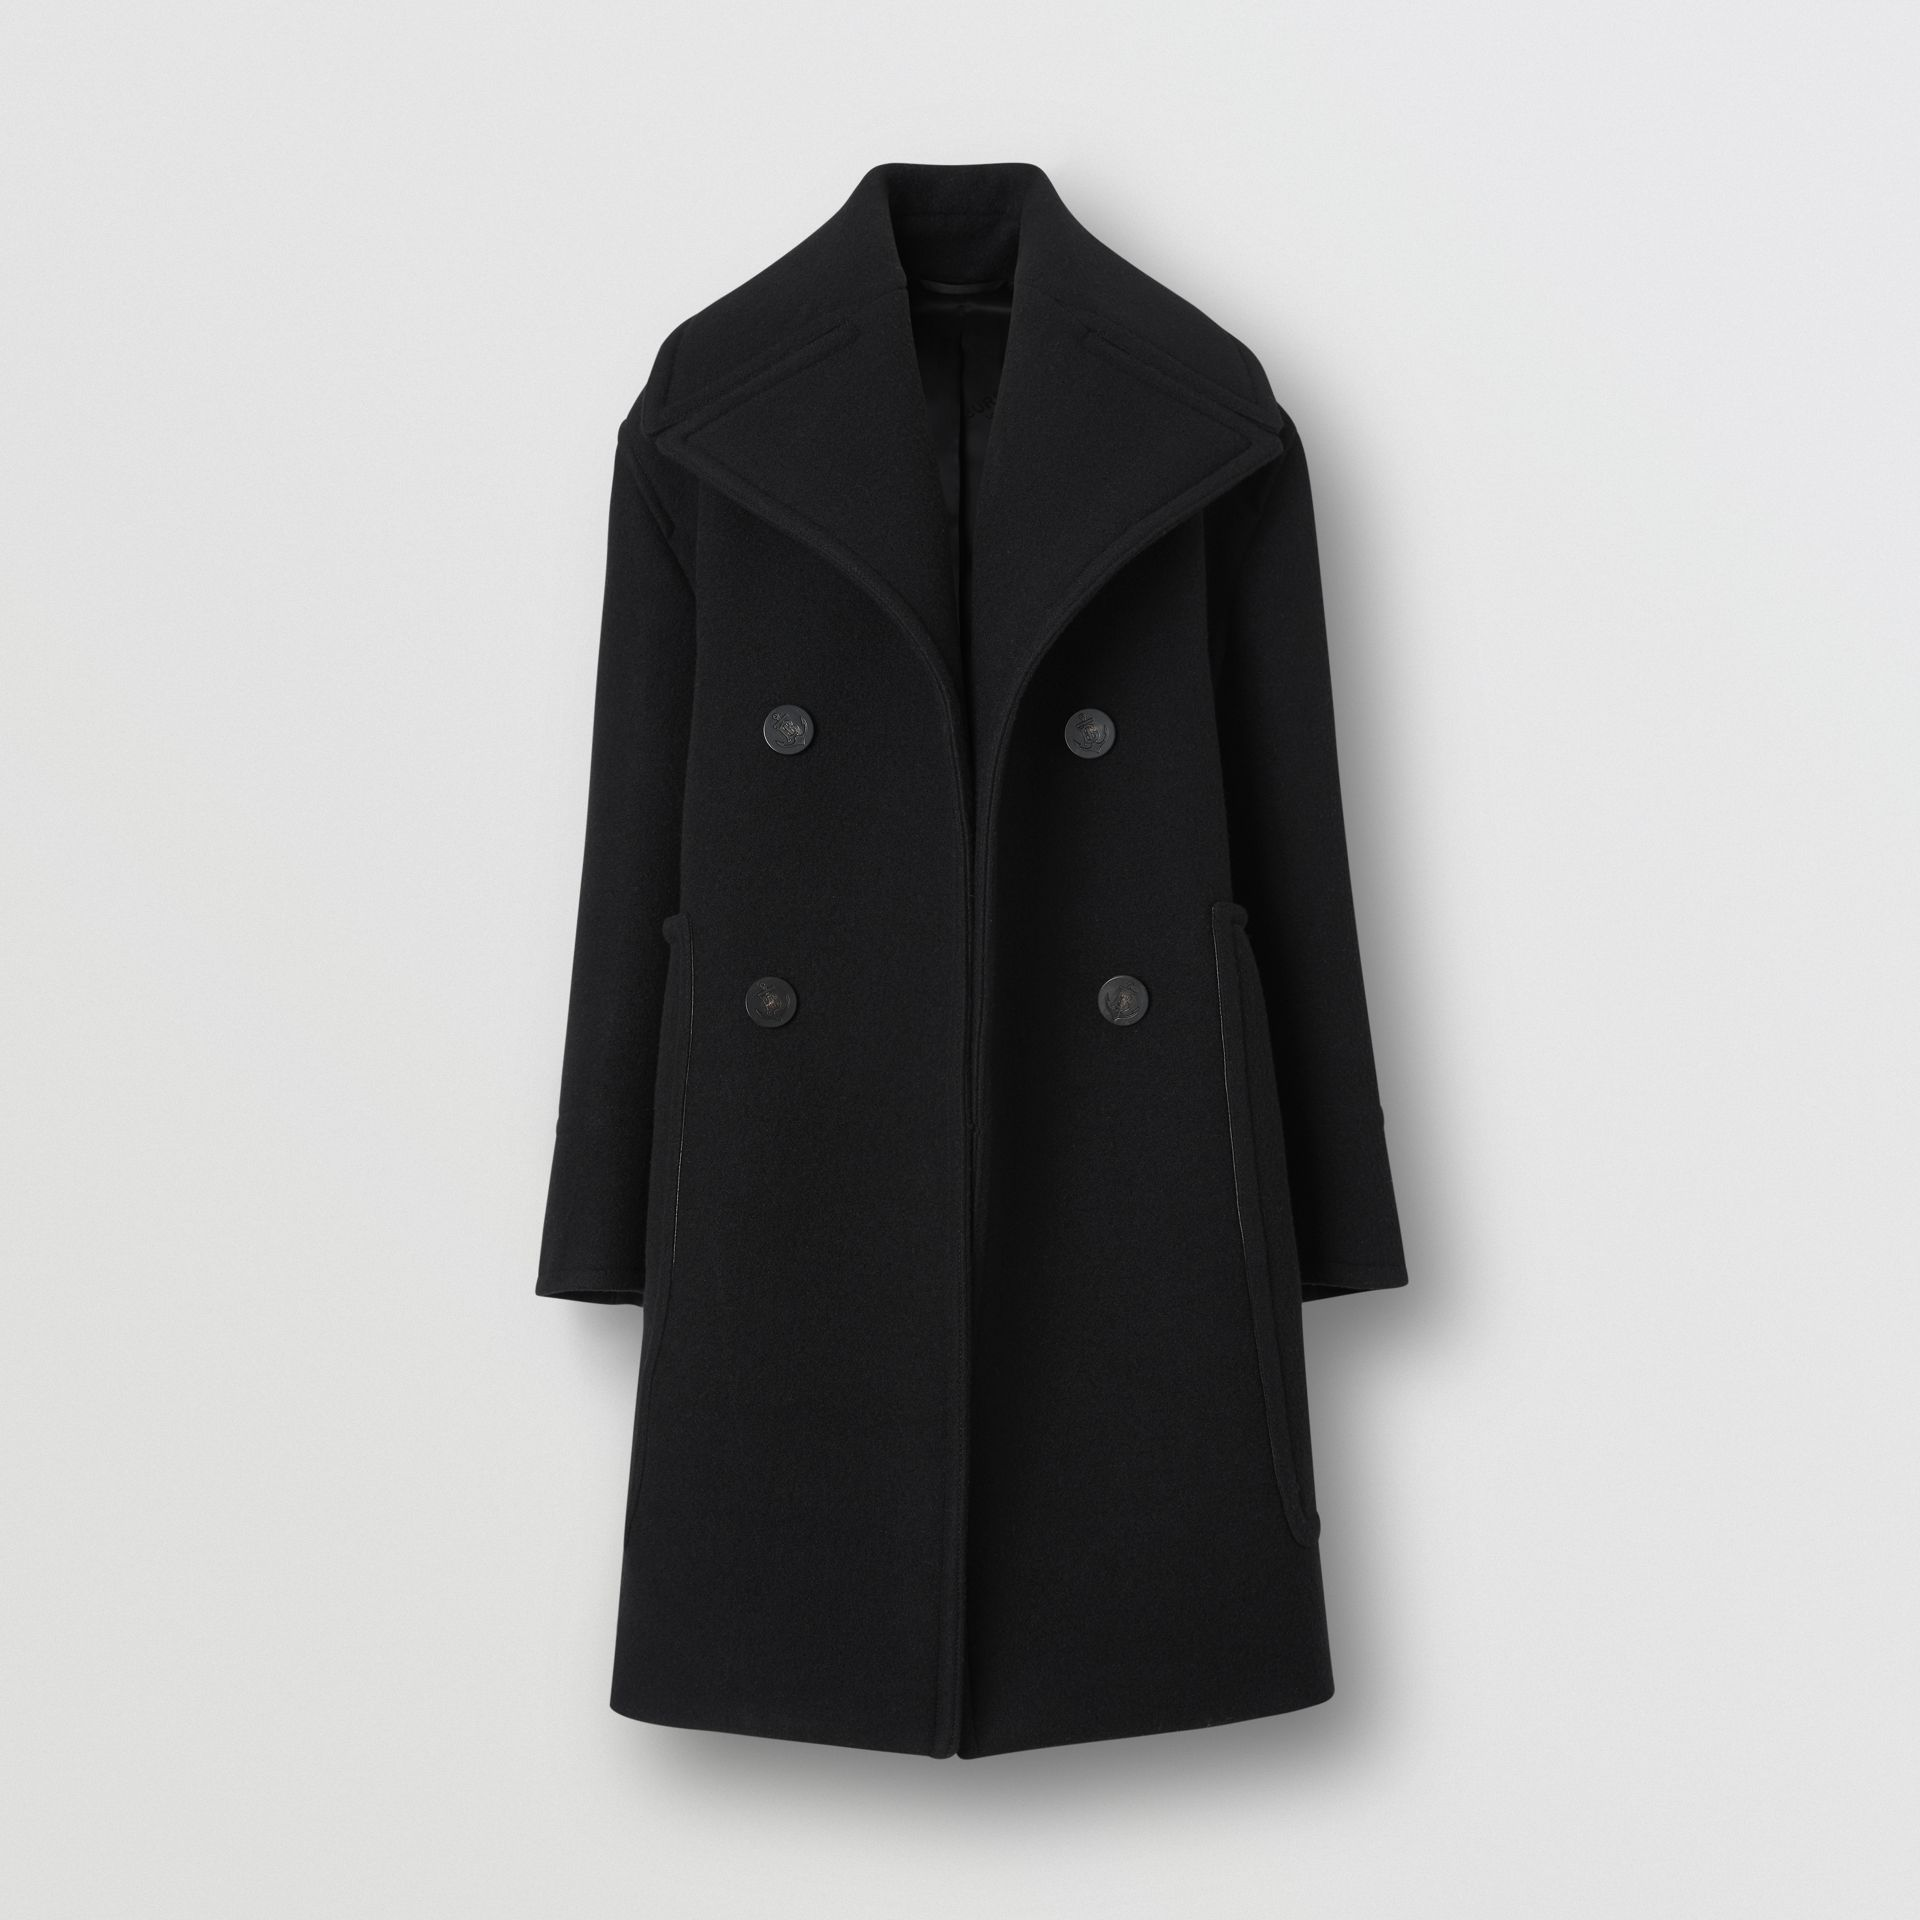 Wool Oversized Pea Coat in Black - Women | Burberry - gallery image 3